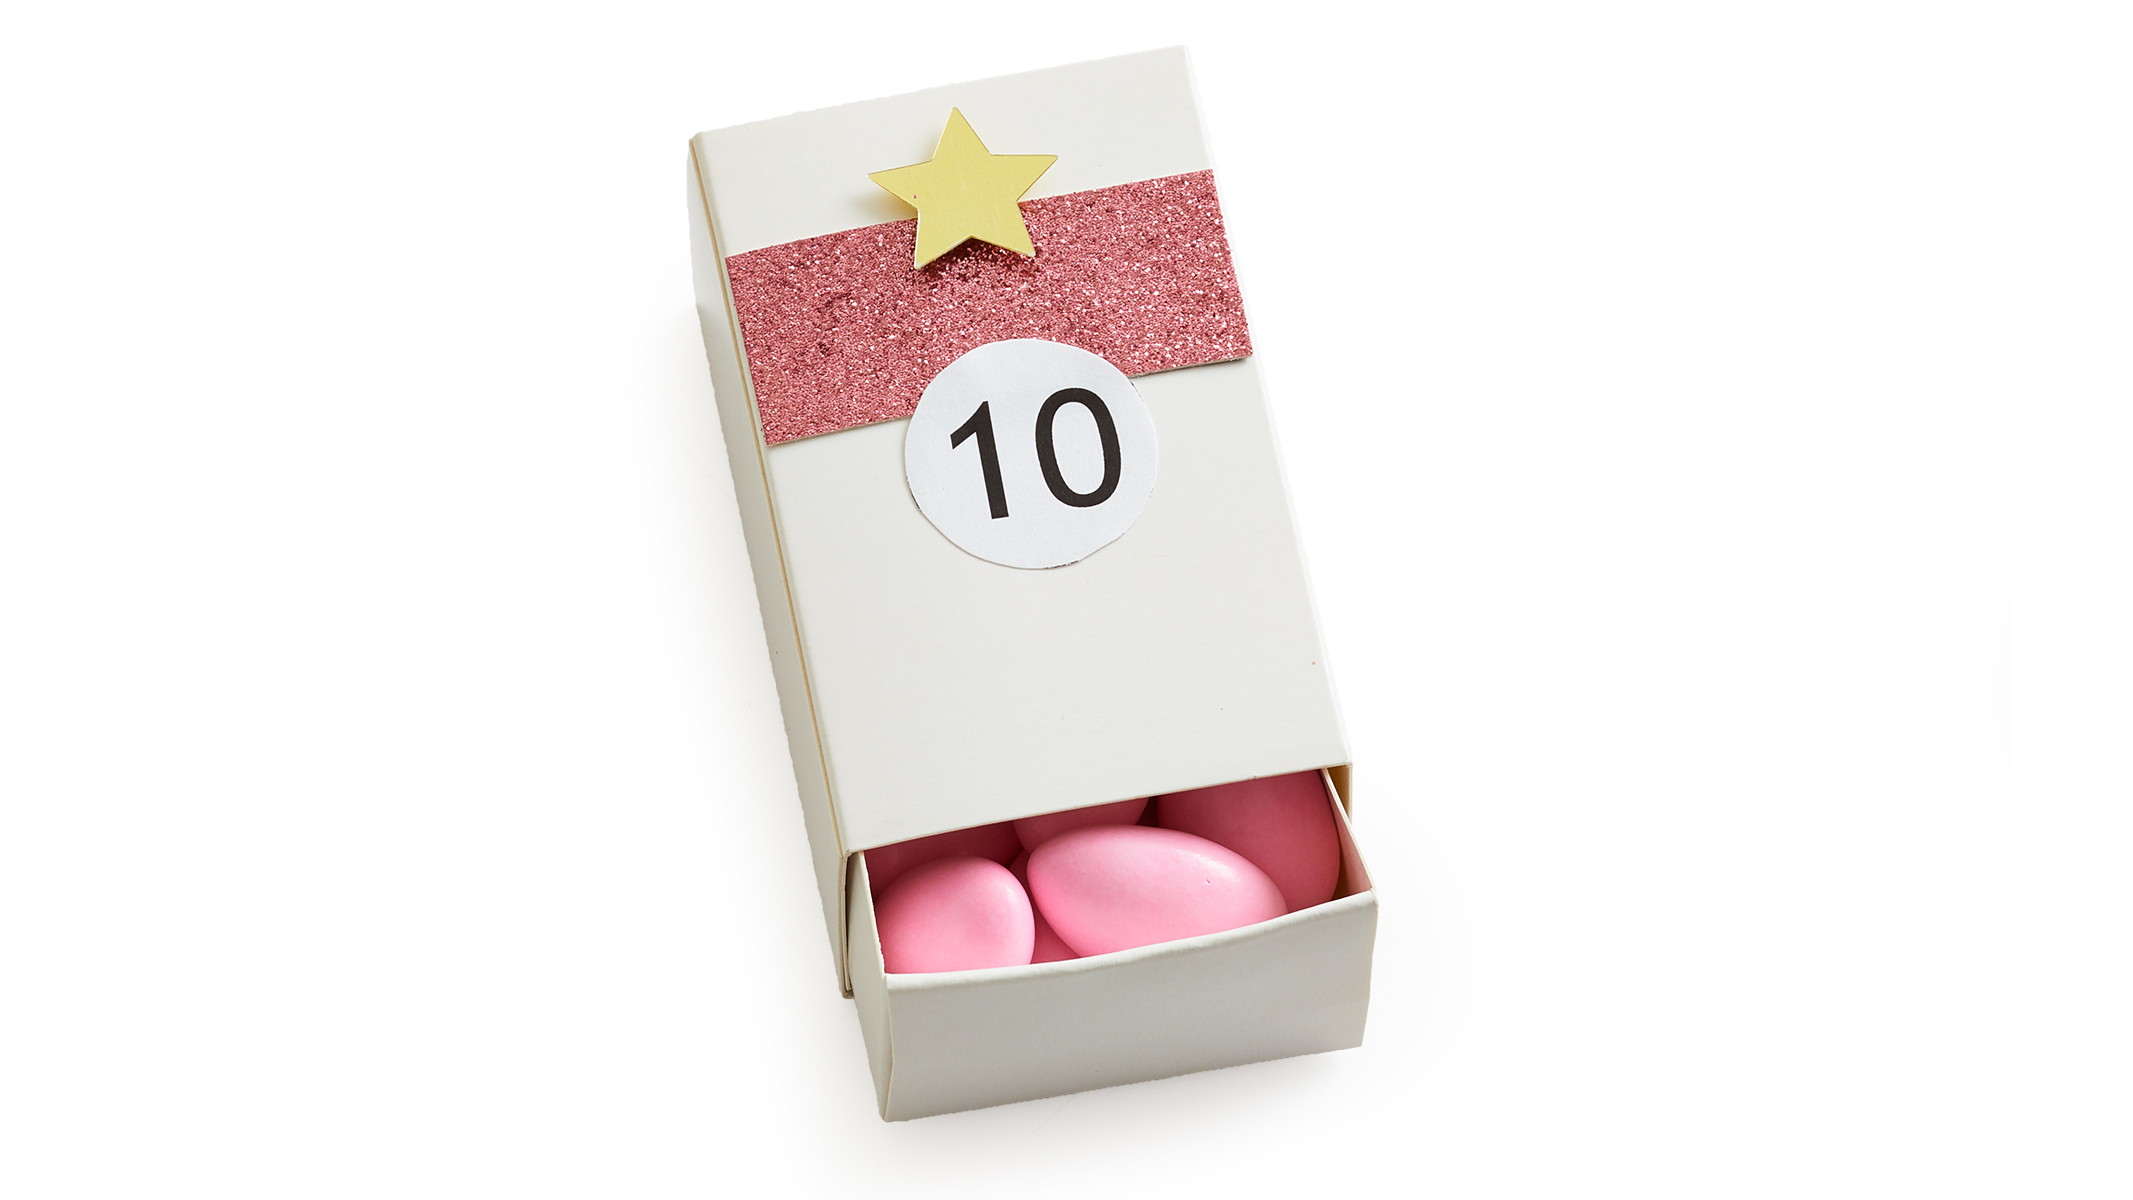 match box with pink candies day 10 of hanging advent calendar